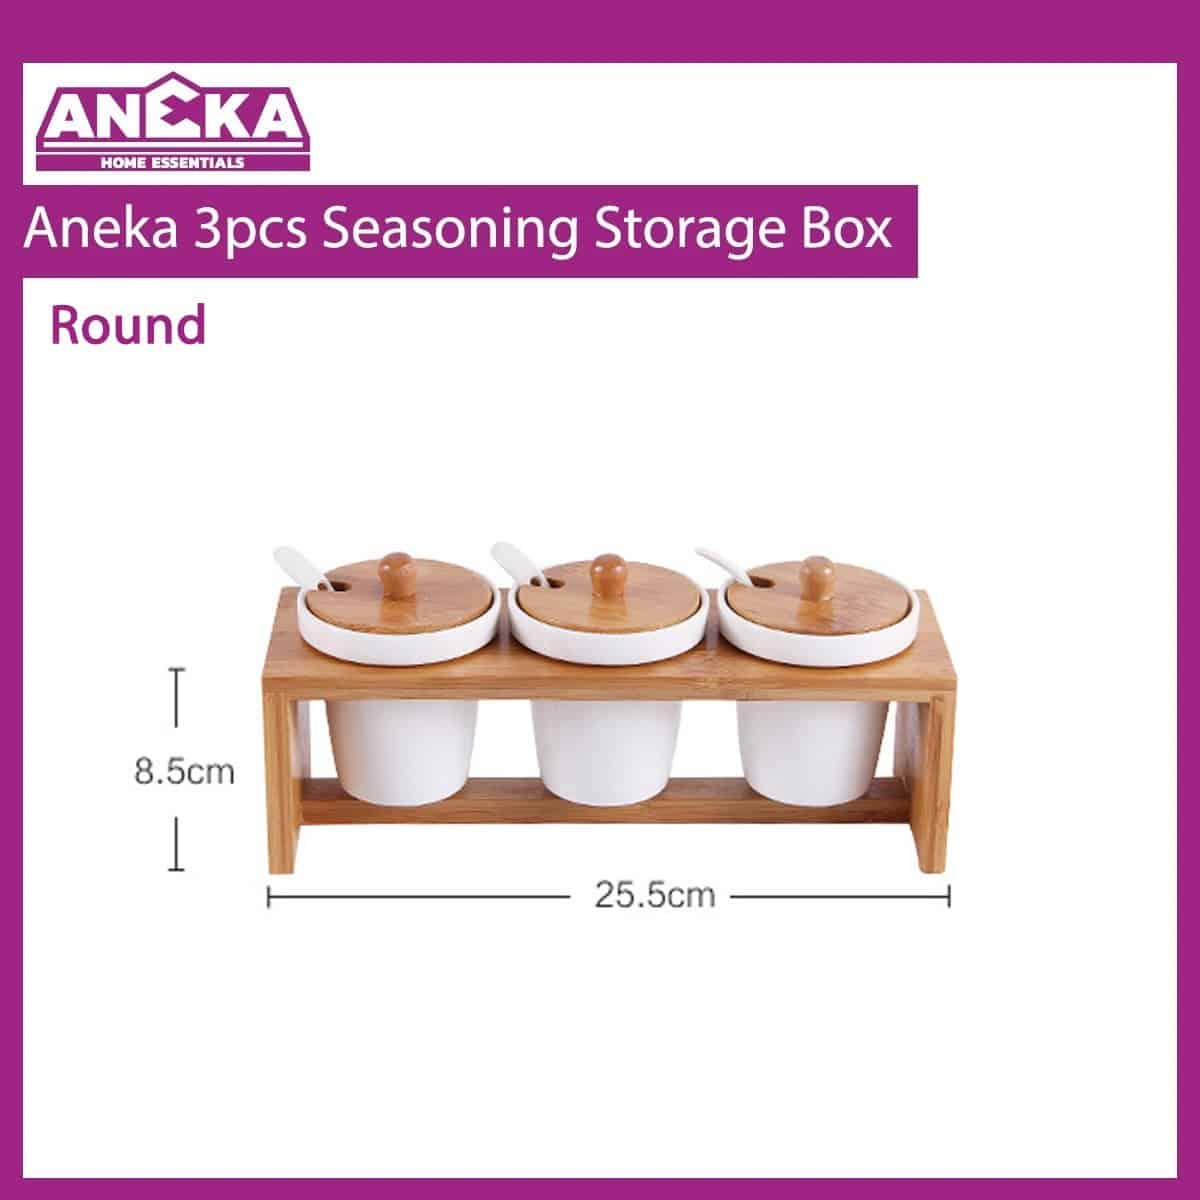 Aneka 3pcs Seasoning Storage Box - Round